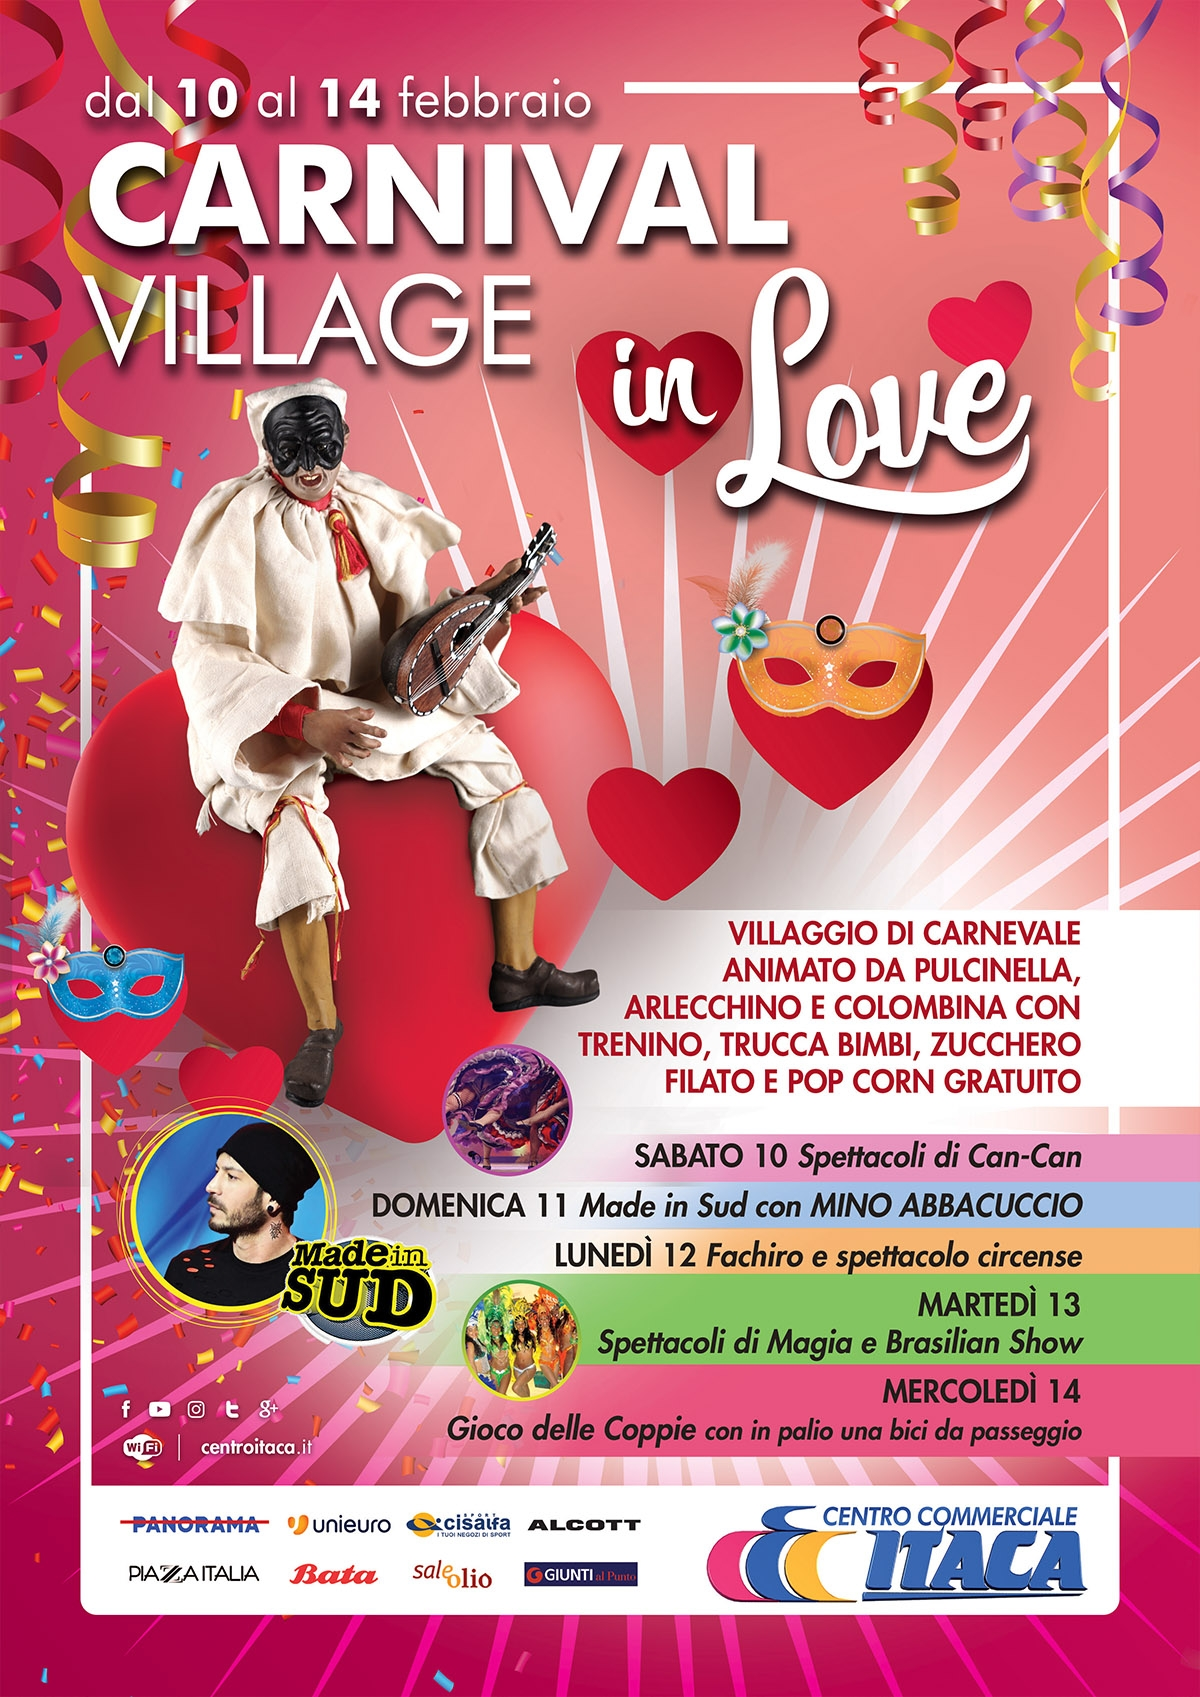 CARNIVAL VILLAGE IN LOVE